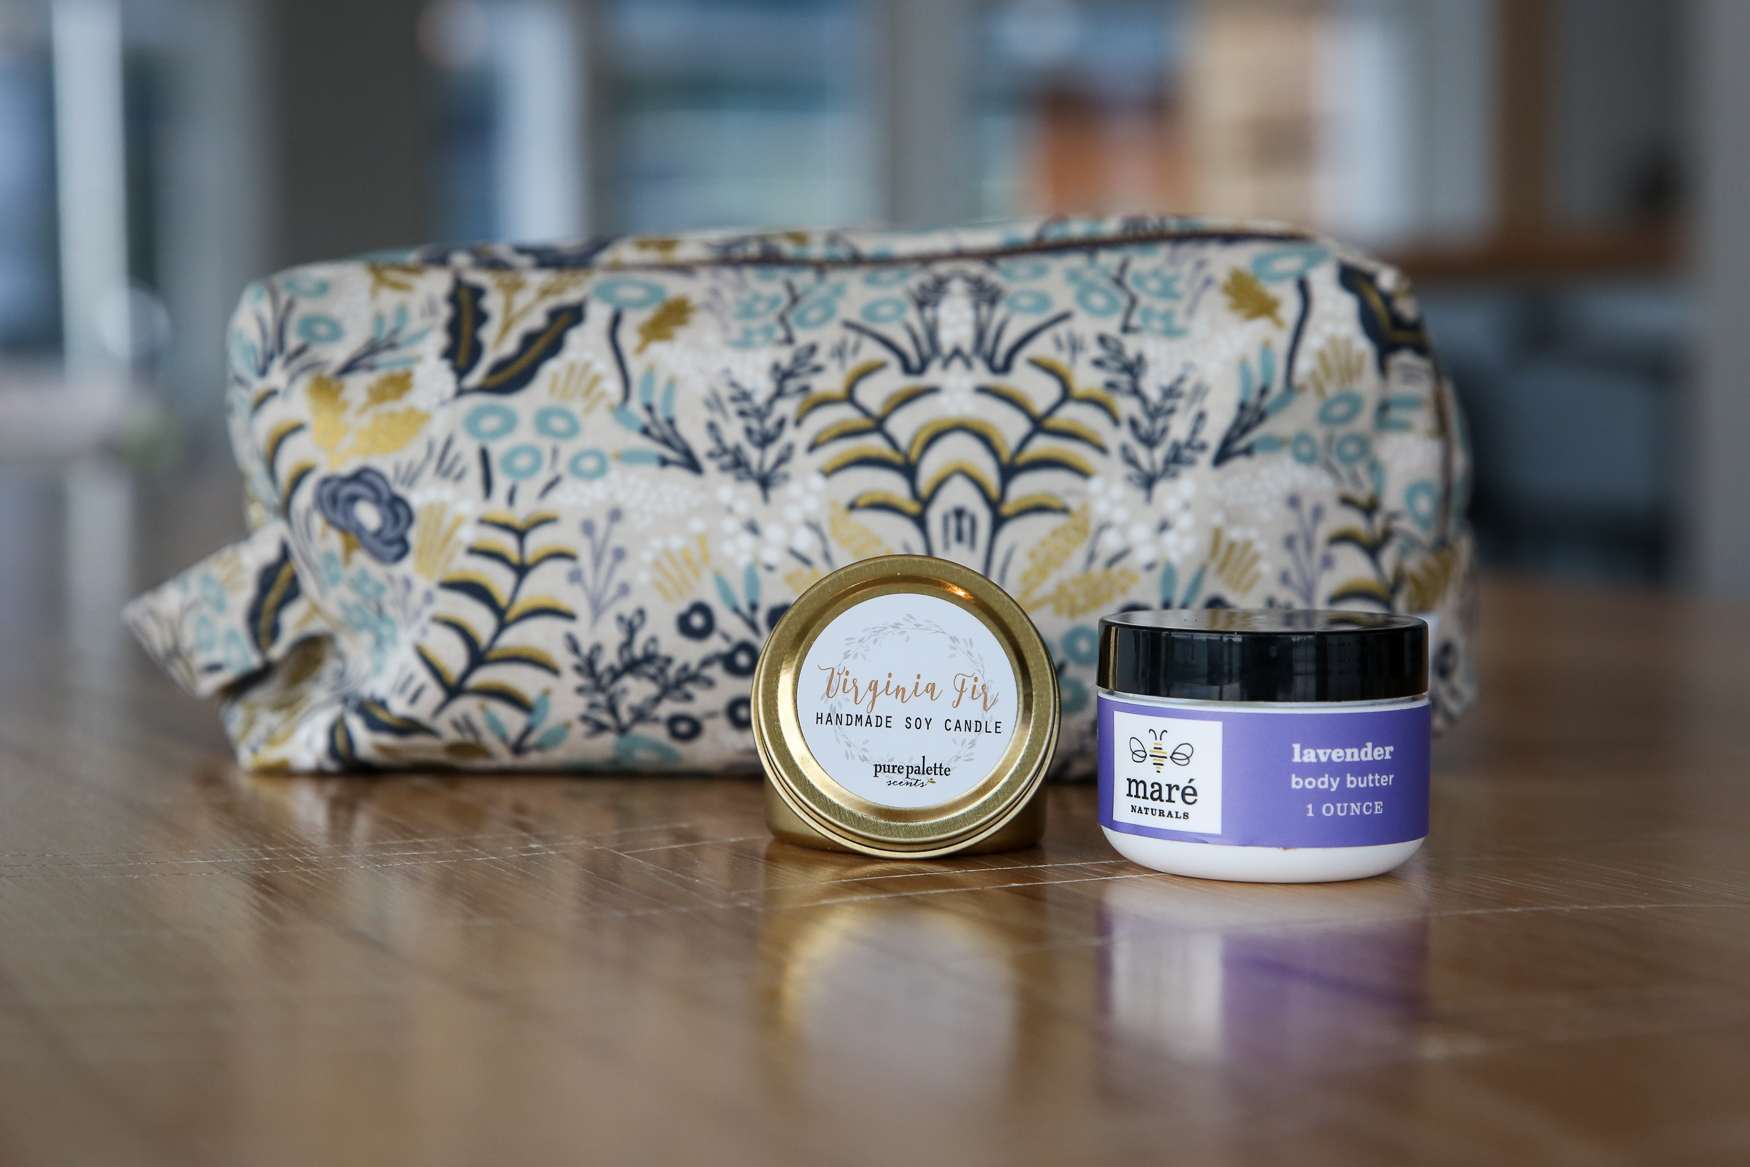 Make-up bag{ } by{ } Leah Bee Quilt (https://leahbeequilts.com/), lotion by Mare Naturals (http://www.marenaturals.com/) and candle by{ }Pure Palette (https://www.purepalettescents.com/).{ }(Amanda Andrade-Rhoades/DC Refined)